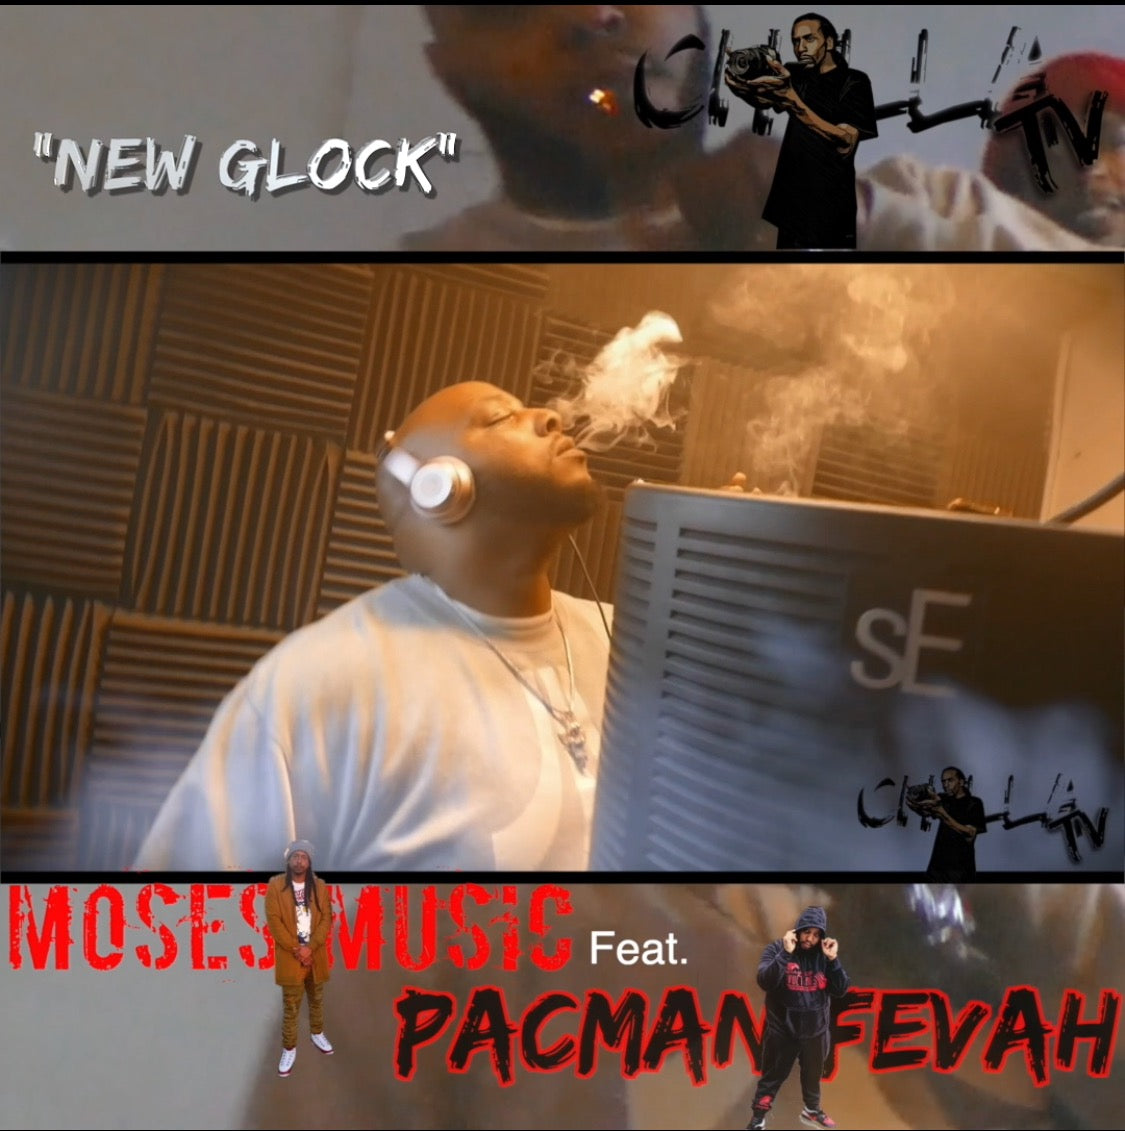 """New Glock"" by Moses Music ft. Pacman Fevah"